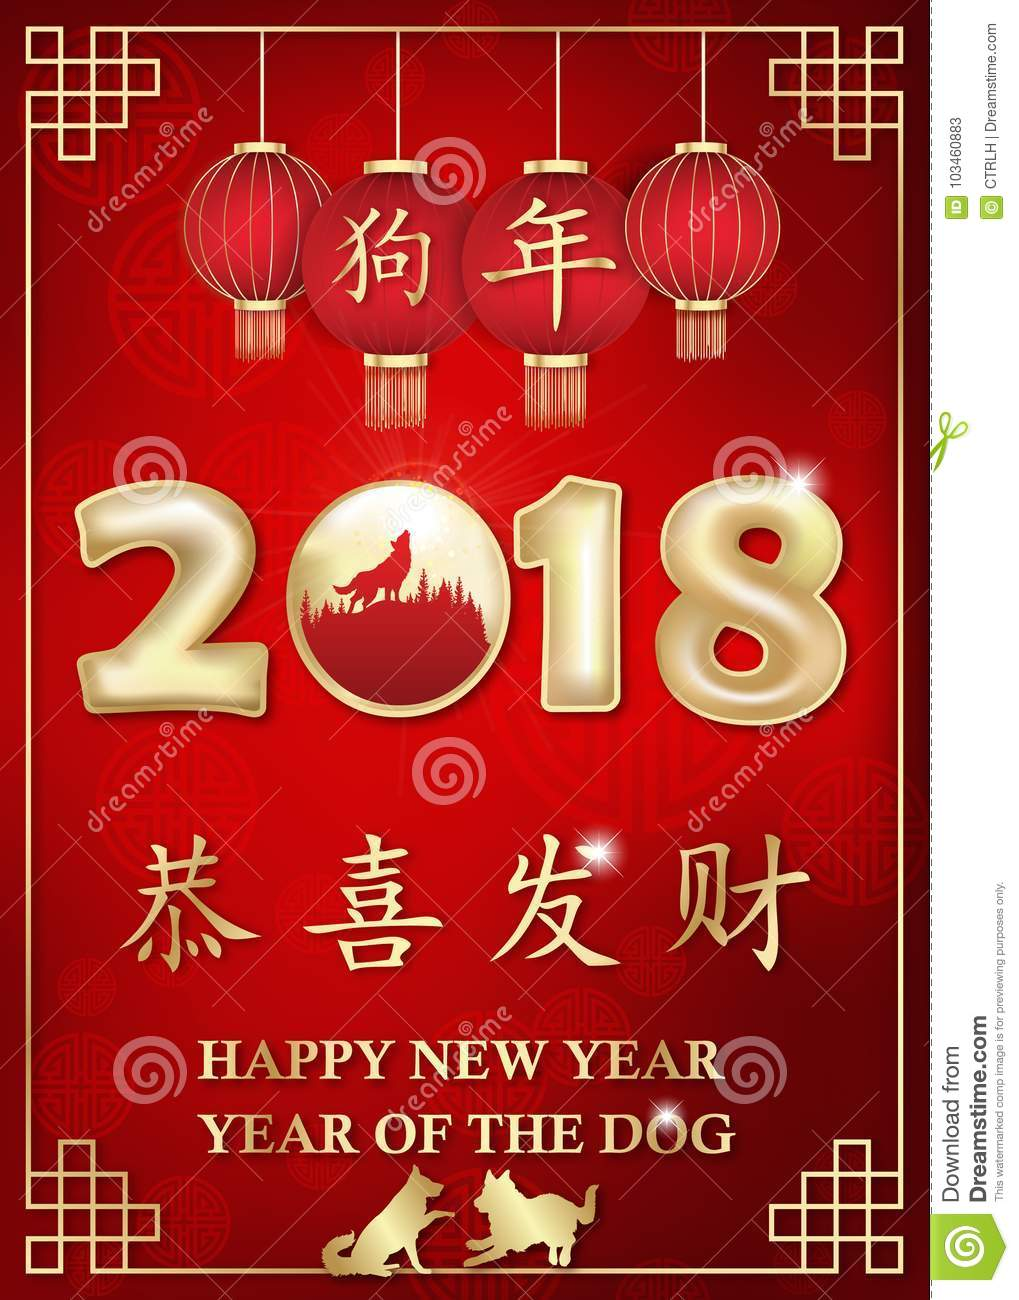 happy chinese new year of the dog 2018 corporate red greeting card